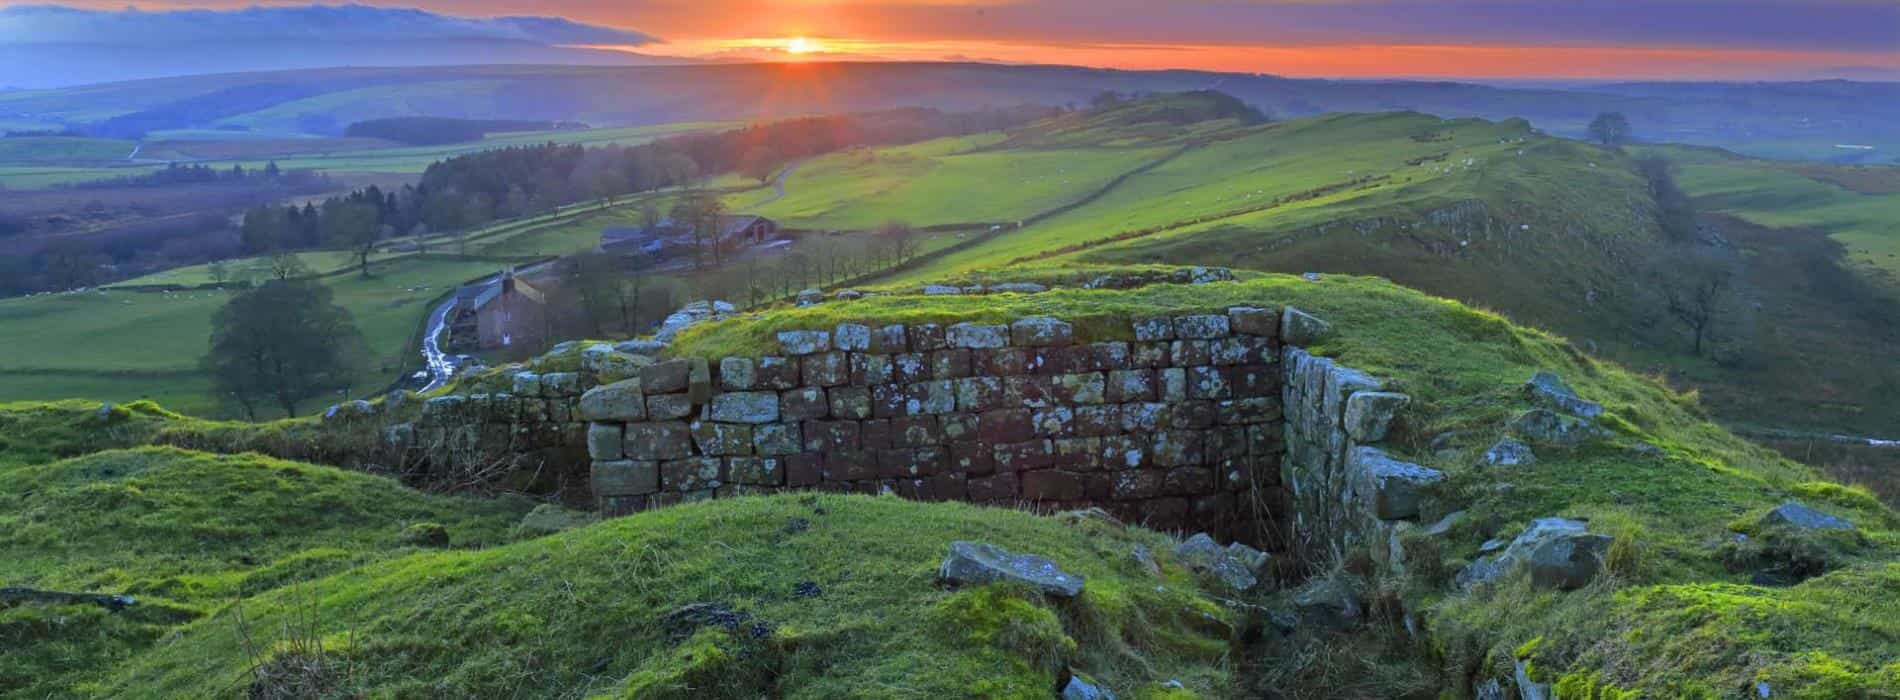 Hadrian S Wall: Official Visitor Information